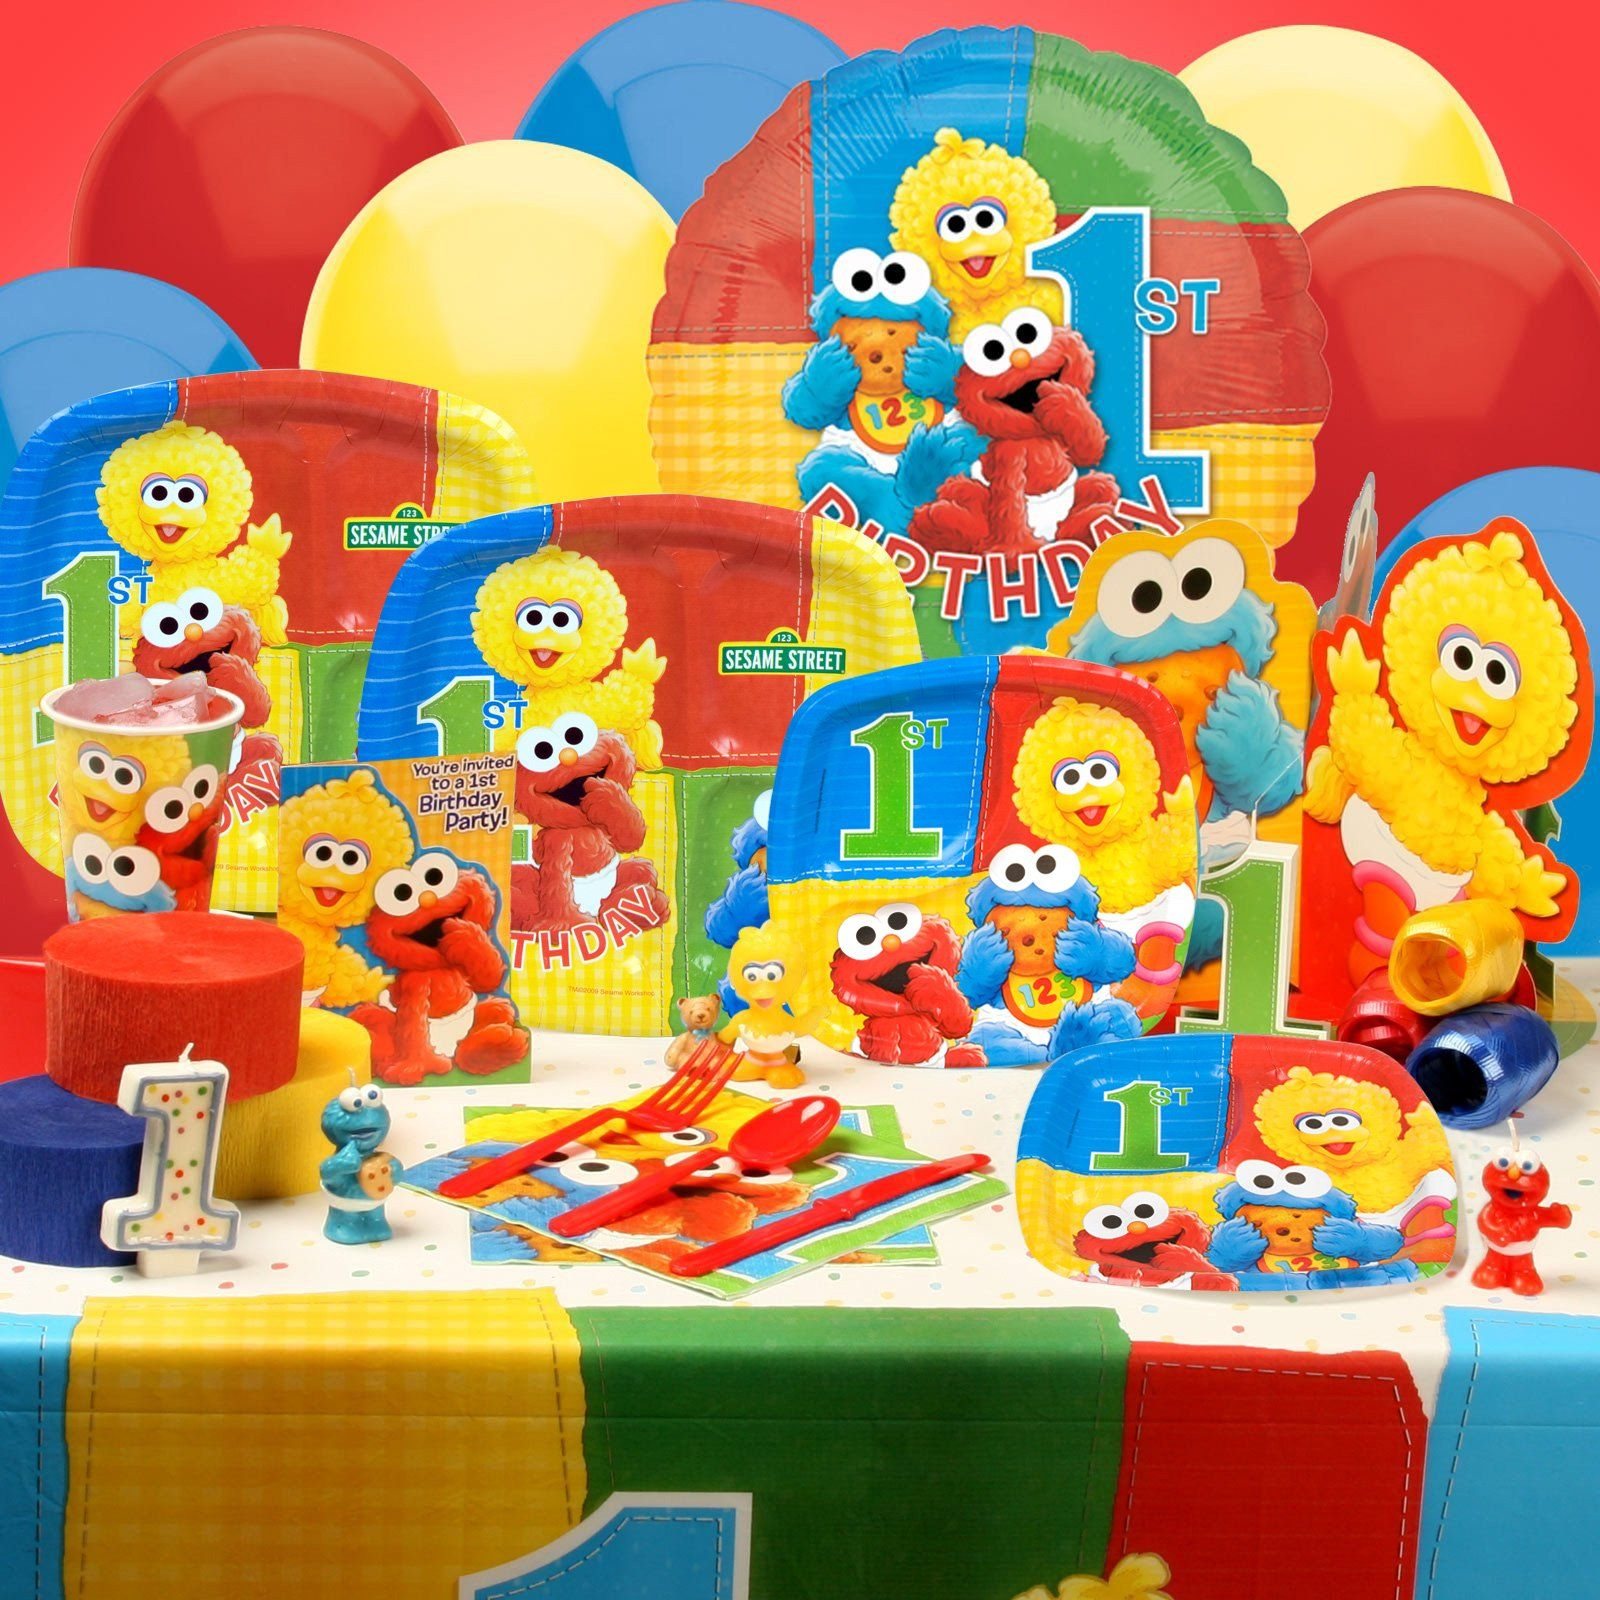 Elmo 1st birthday party ideas birthday party sesamestreet - Image Detail For Cheap Sesame Street Beginnings 1st Birthday Deluxe Party Kit At